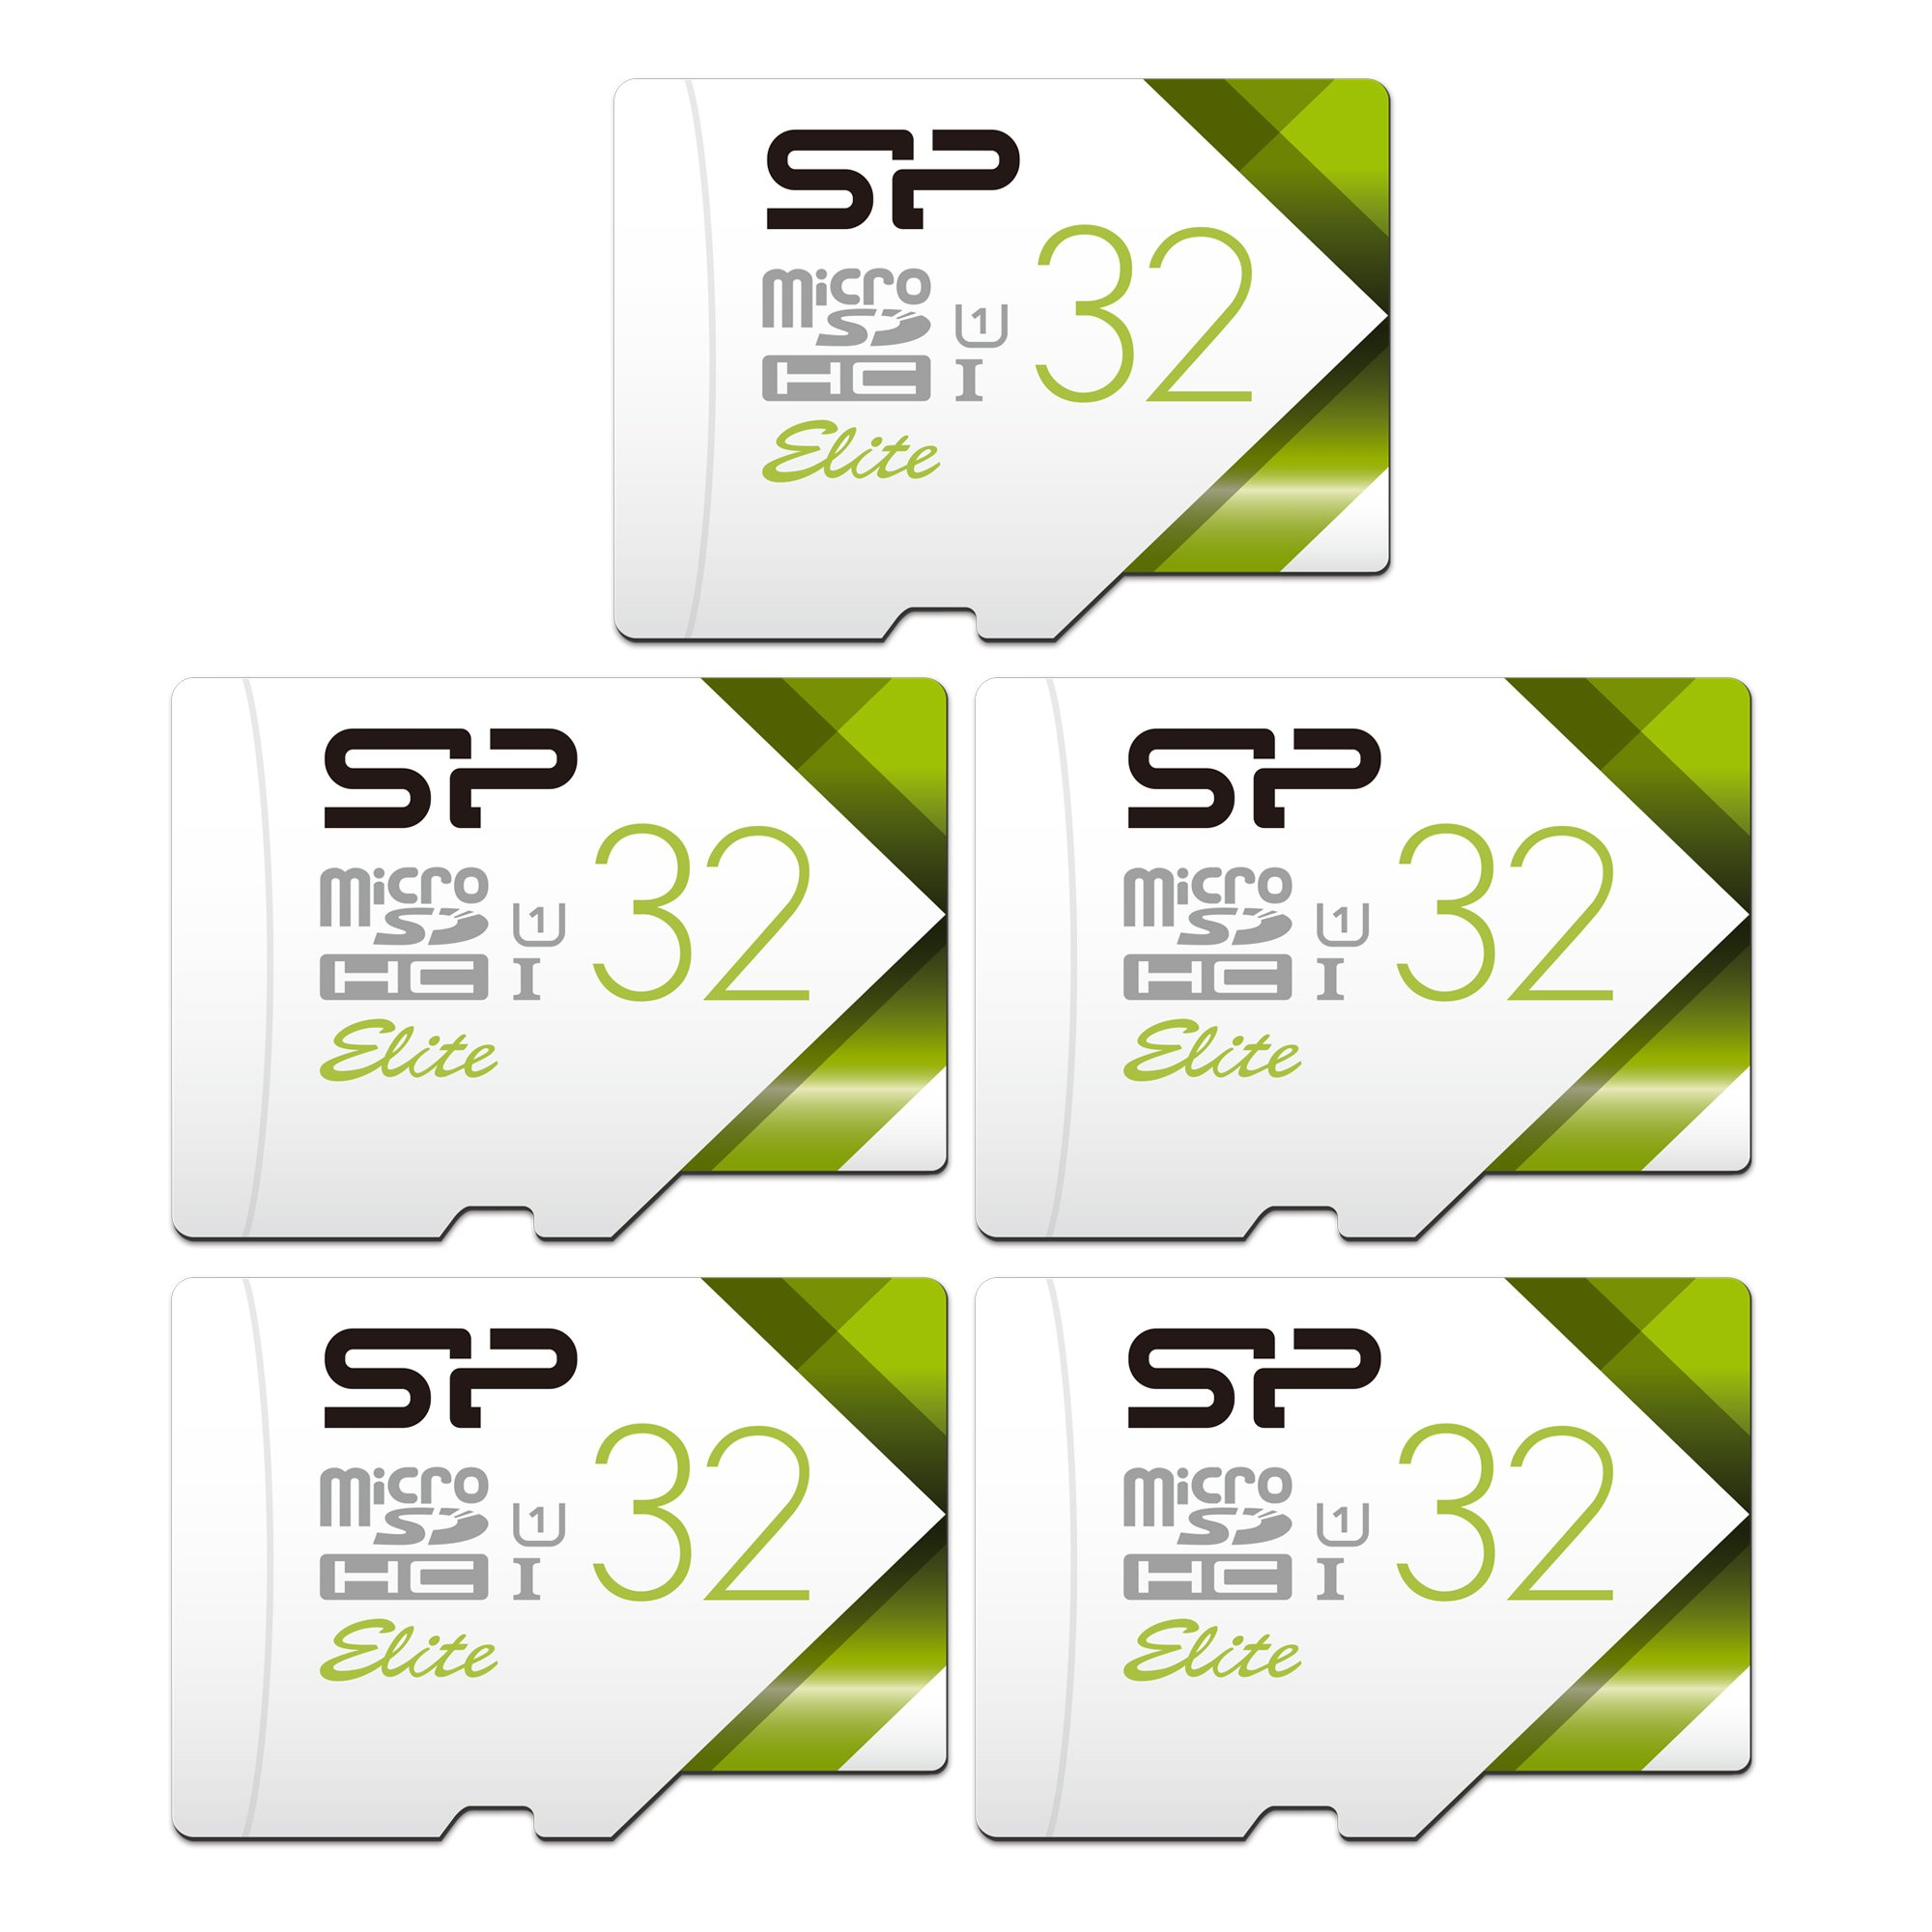 Silicon Power 32GB 5-Pack High Speed MicroSD Card with Adapter by SP Silicon Power (Image #1)